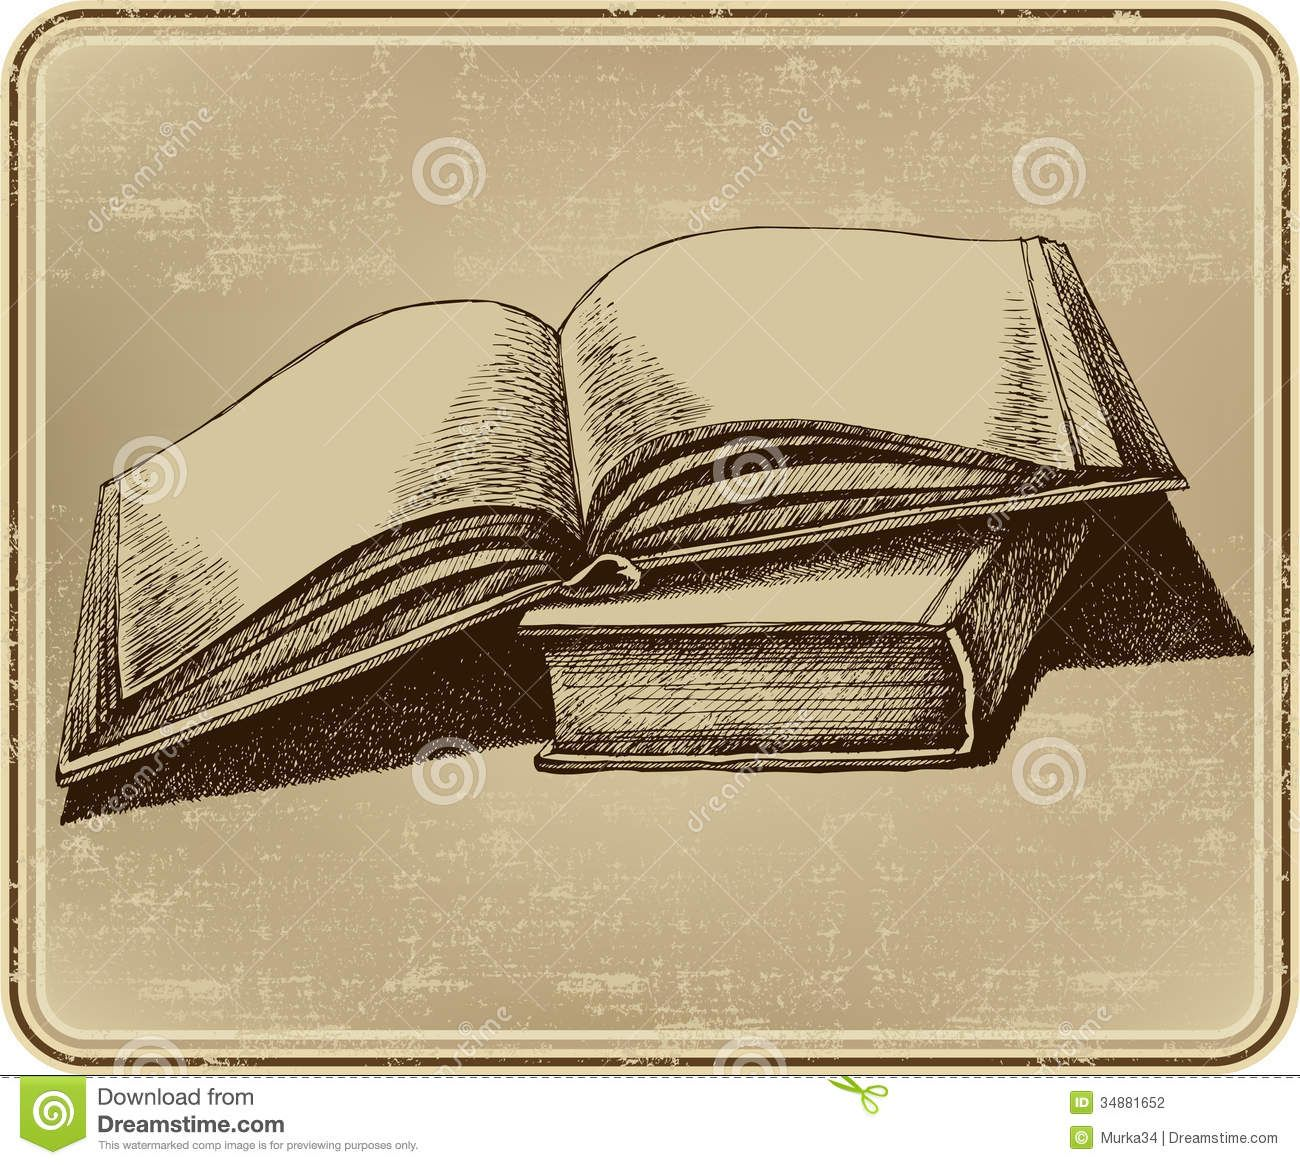 Open Book Drawing at GetDrawings com | Free for personal use